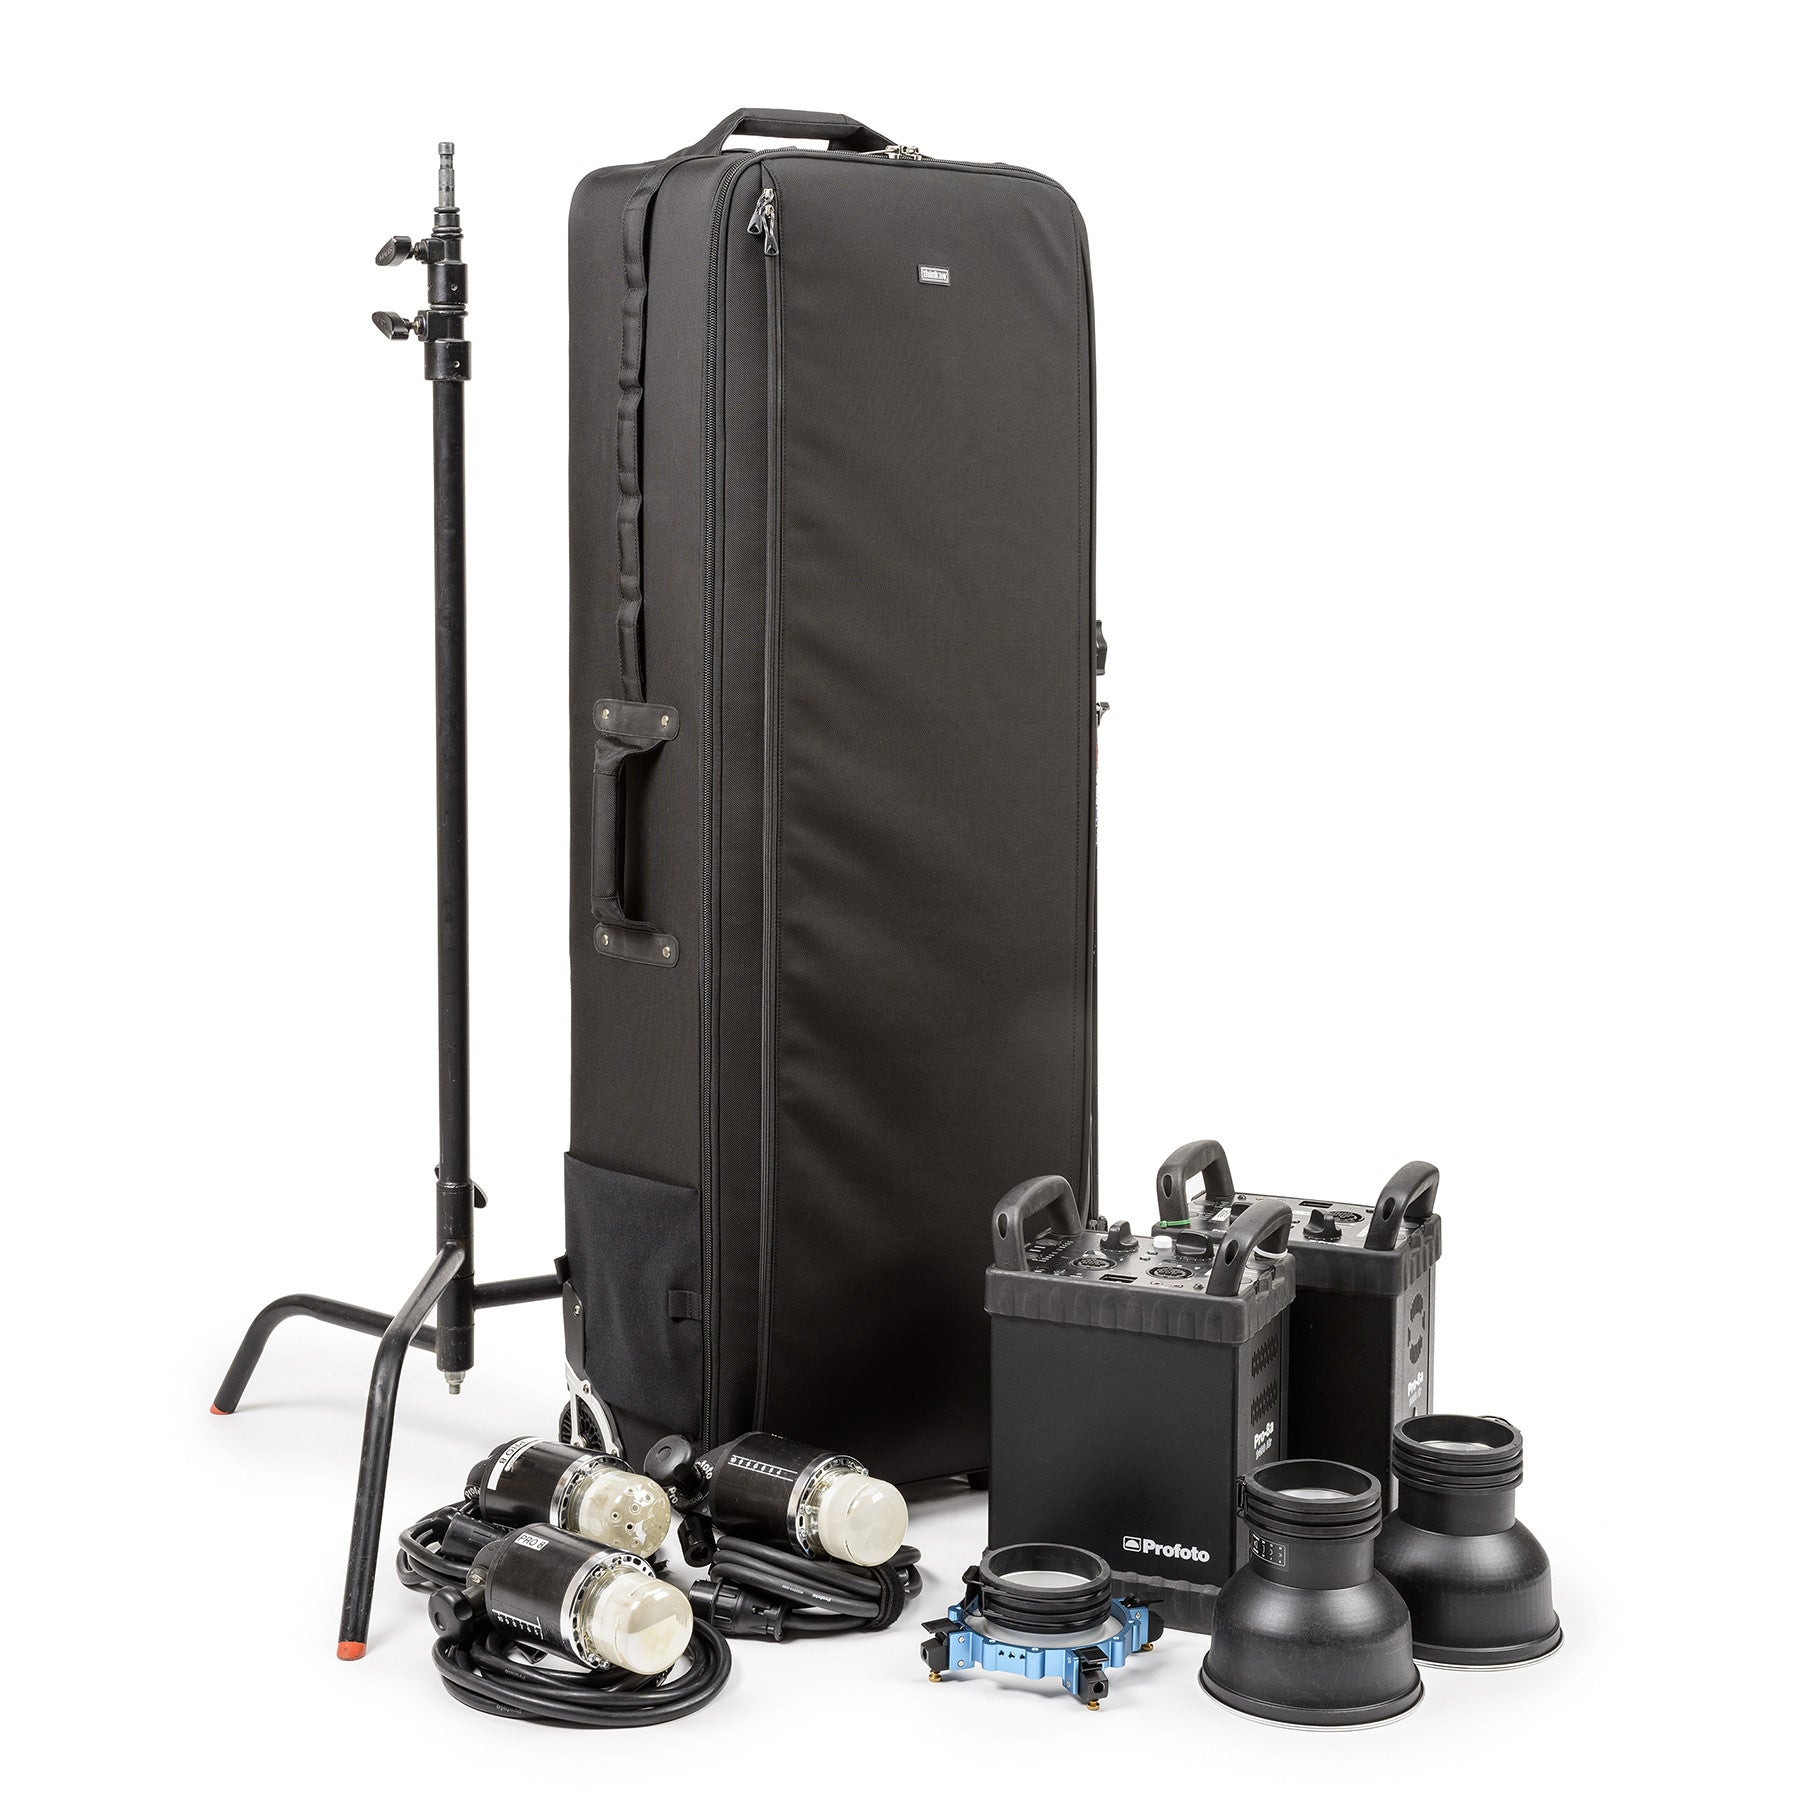 Fit Lighting Equipment and Large Light Modifiers in One Rolling Bag with the New Production Manager